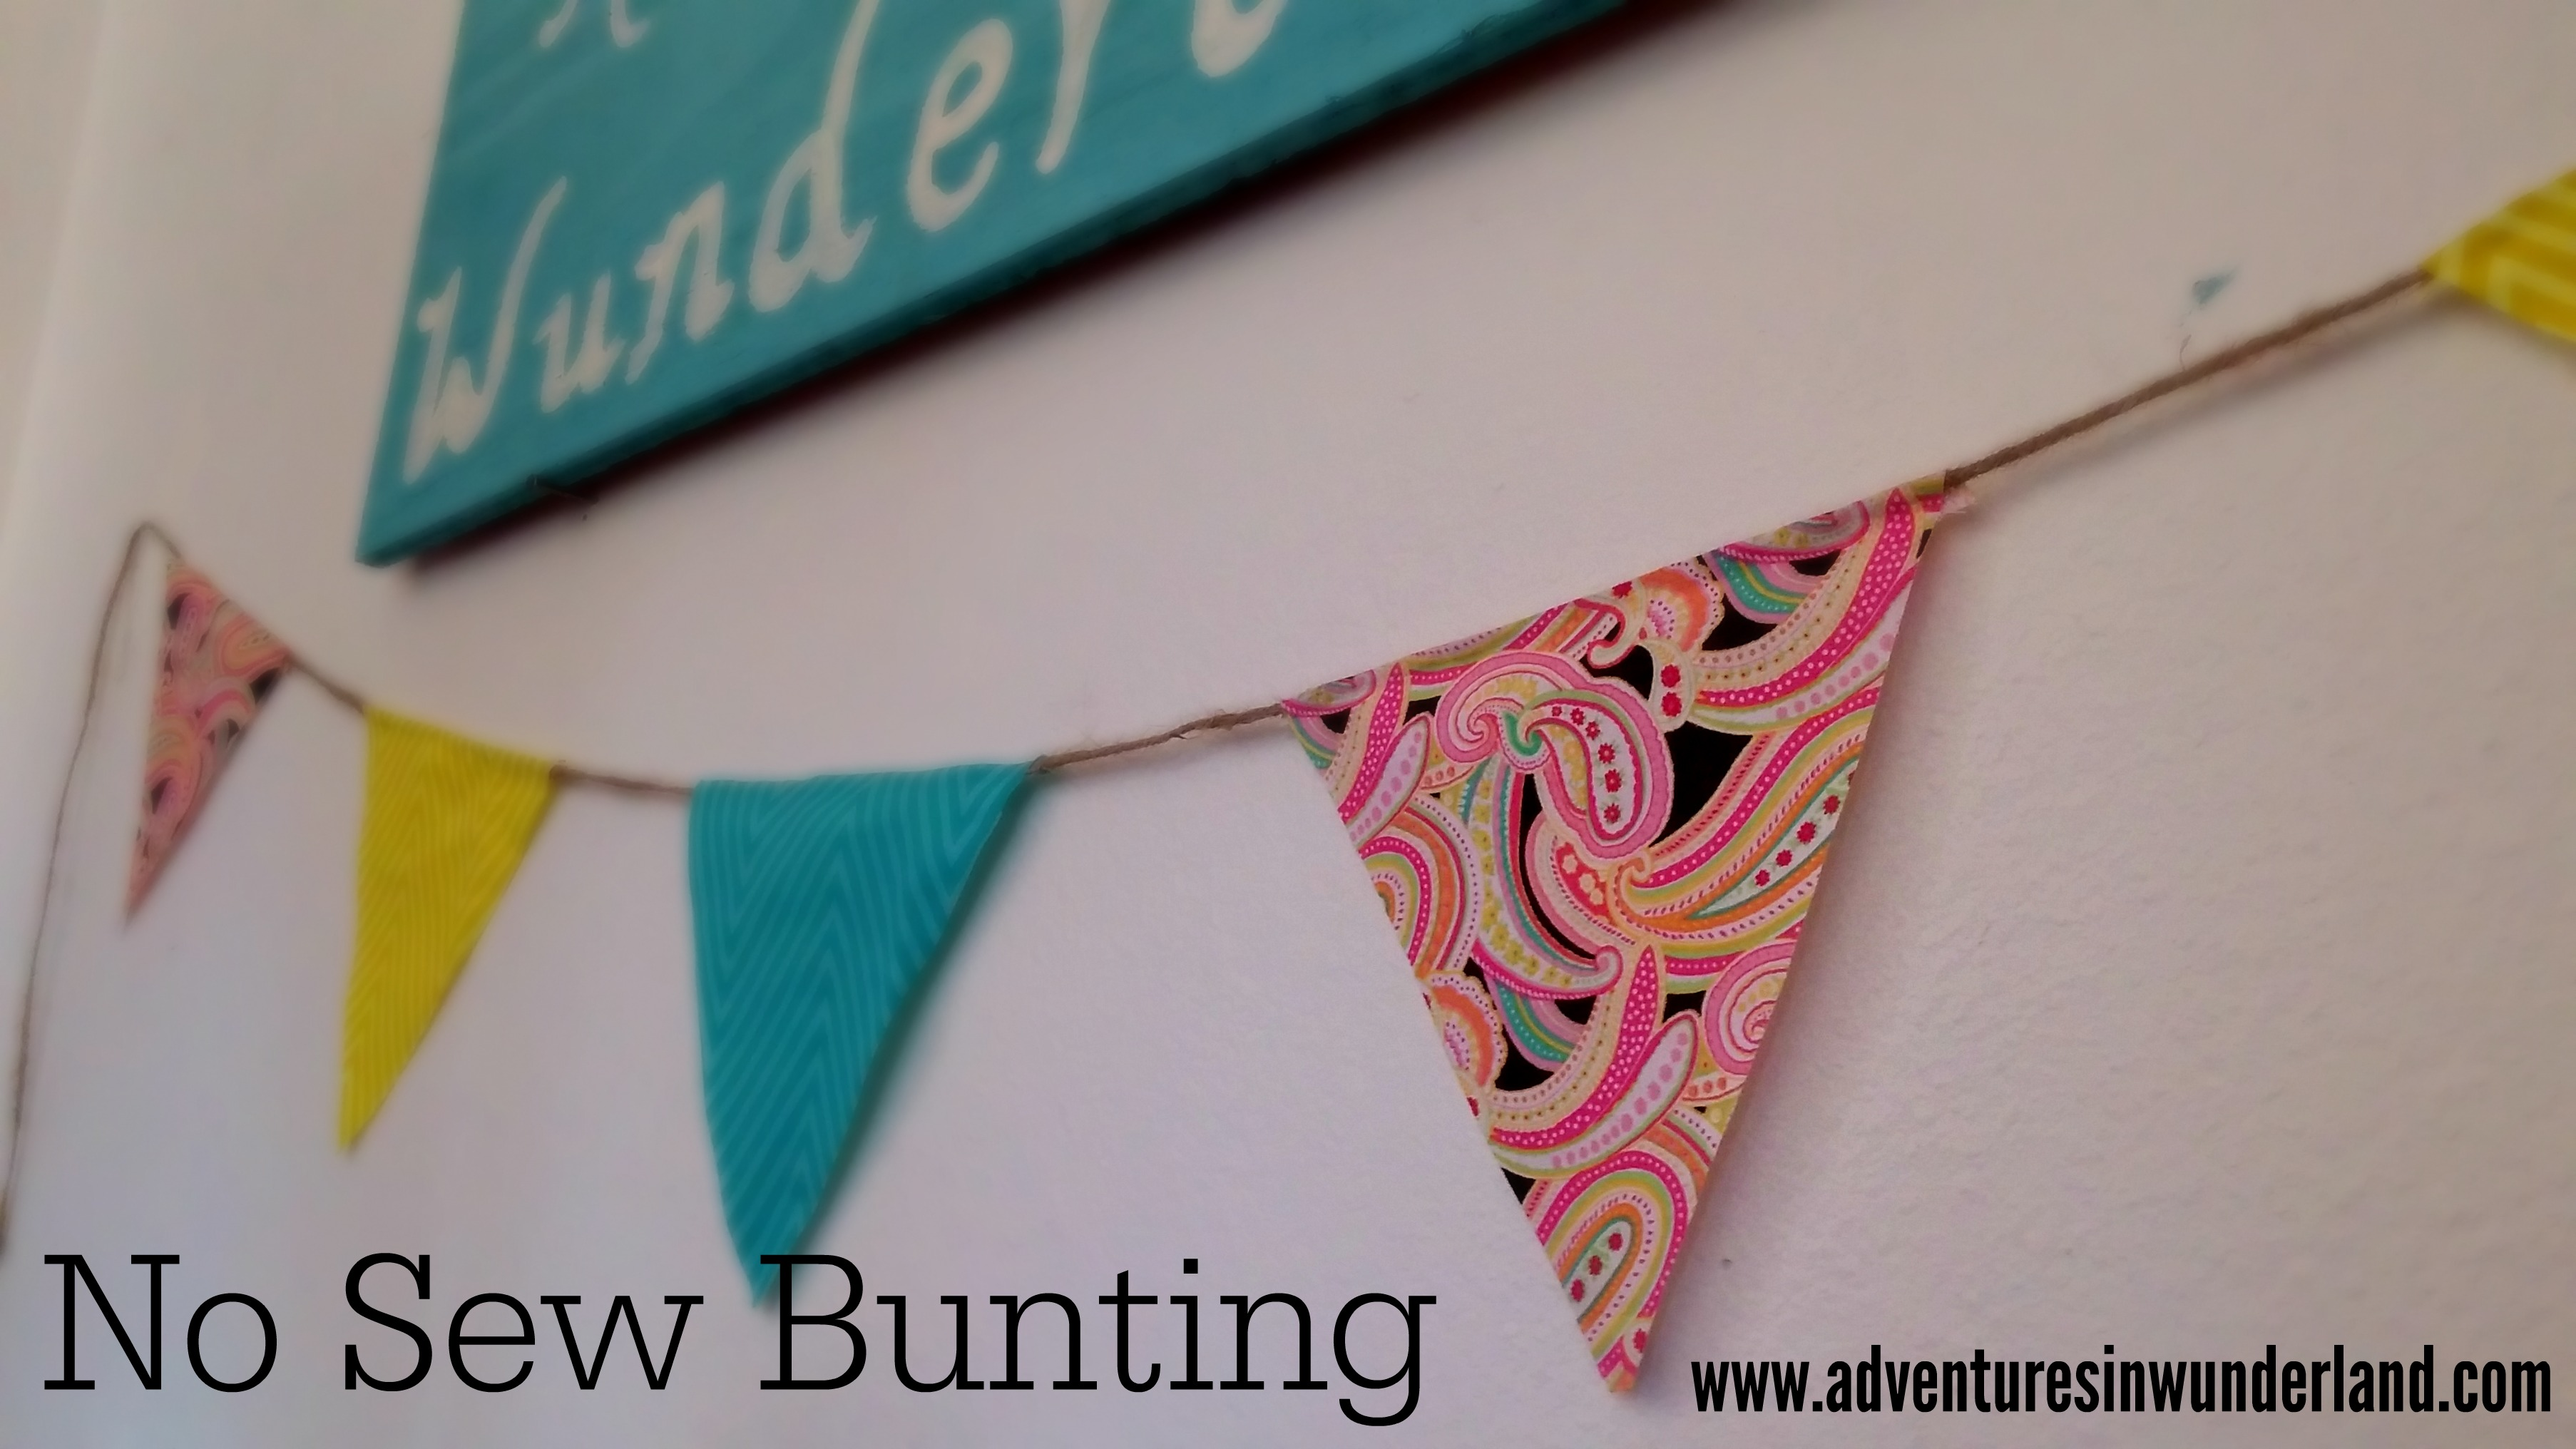 No Sew Bunting Tutorial